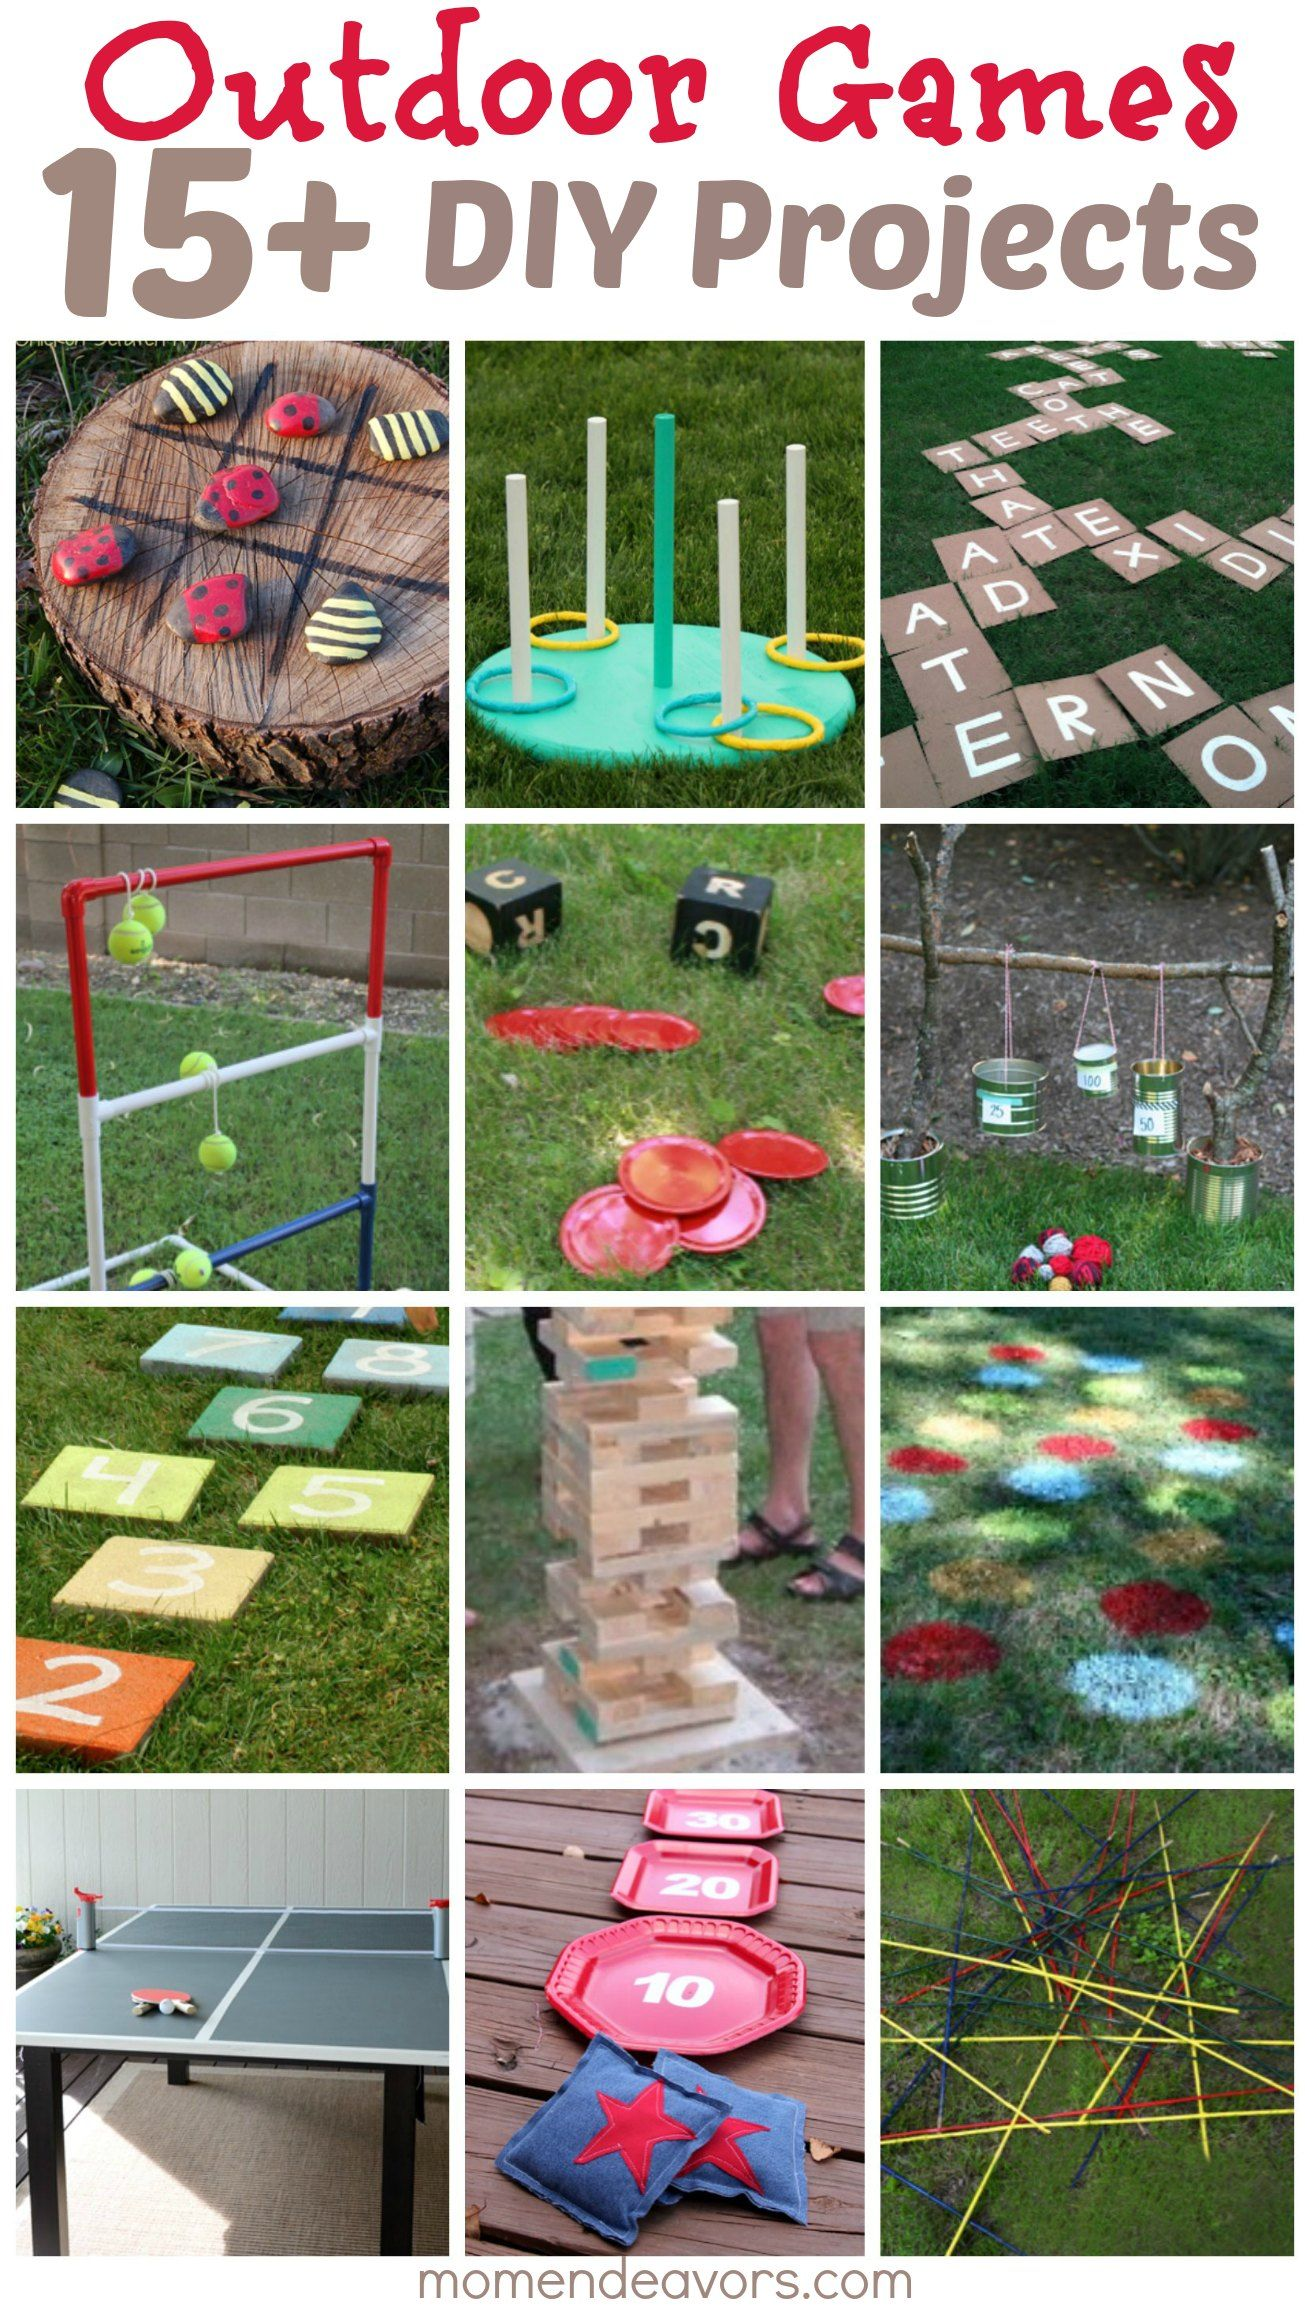 15 Diy Outdoor Games Diy Pinterest Juegos De Jardin Pasalo